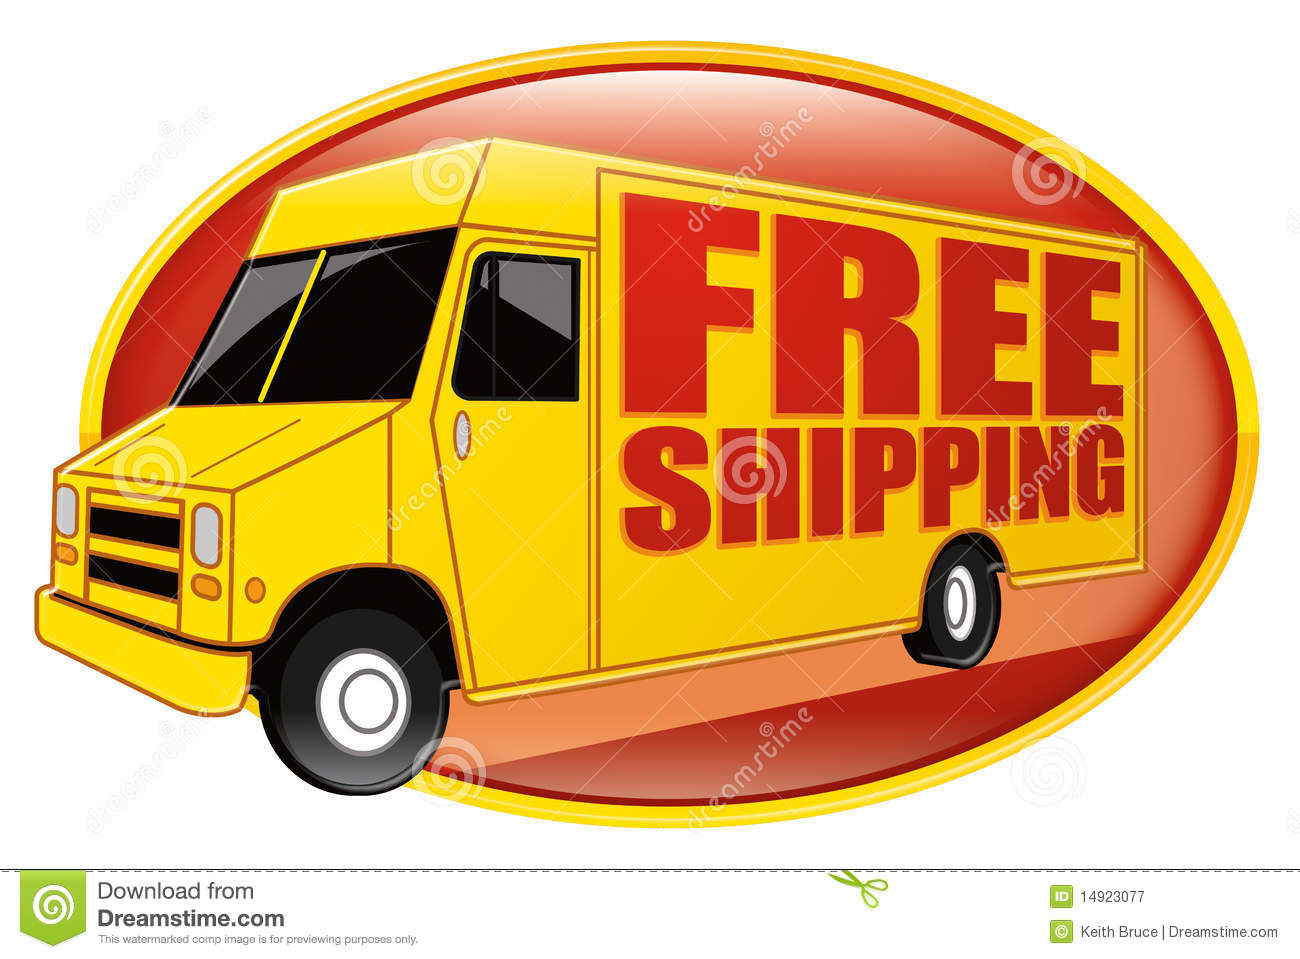 Free Shipping Delivery Truck Yellow Royalty Free Stock Photography - Image: 14923077  Free Shipping D...